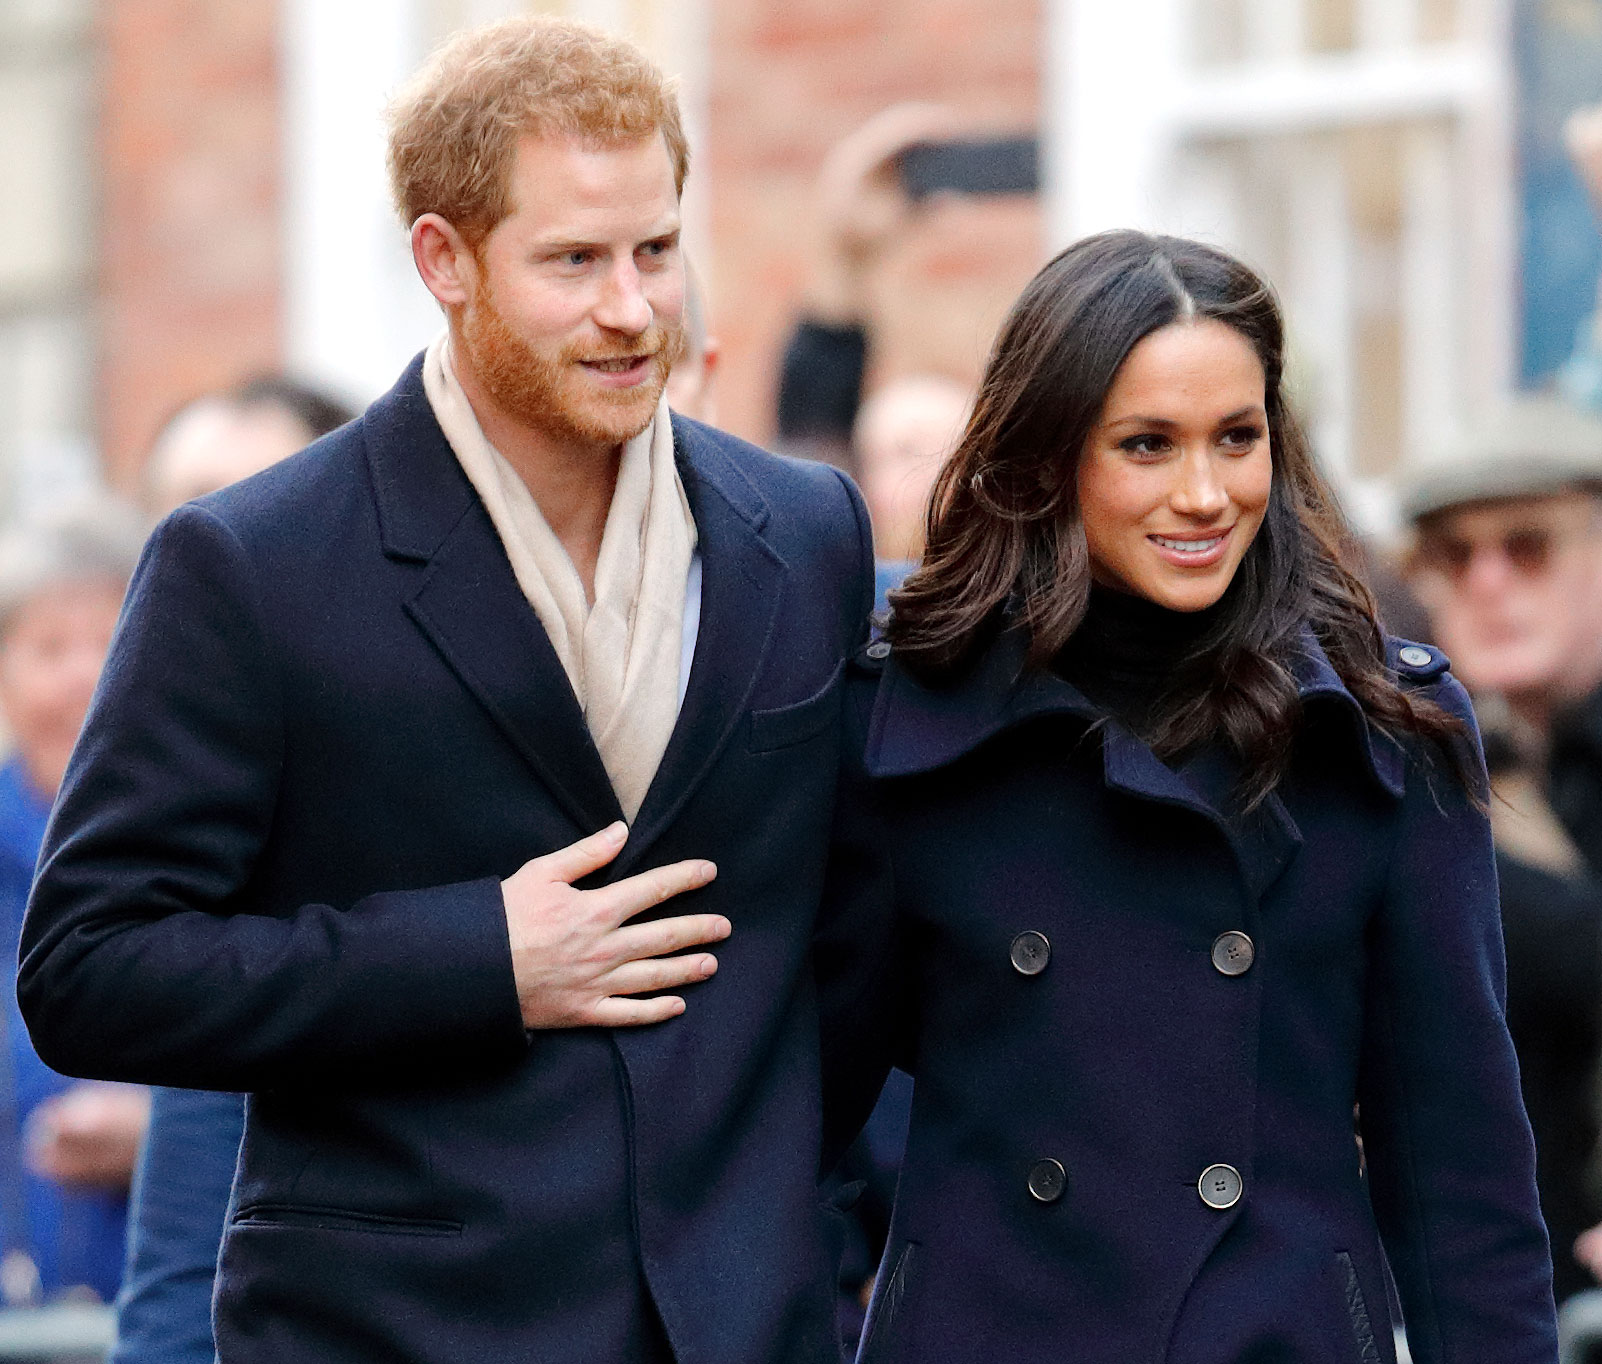 Meghan Markle's First Official Royal Gift Is Something You Probably Have in Your Kitchen